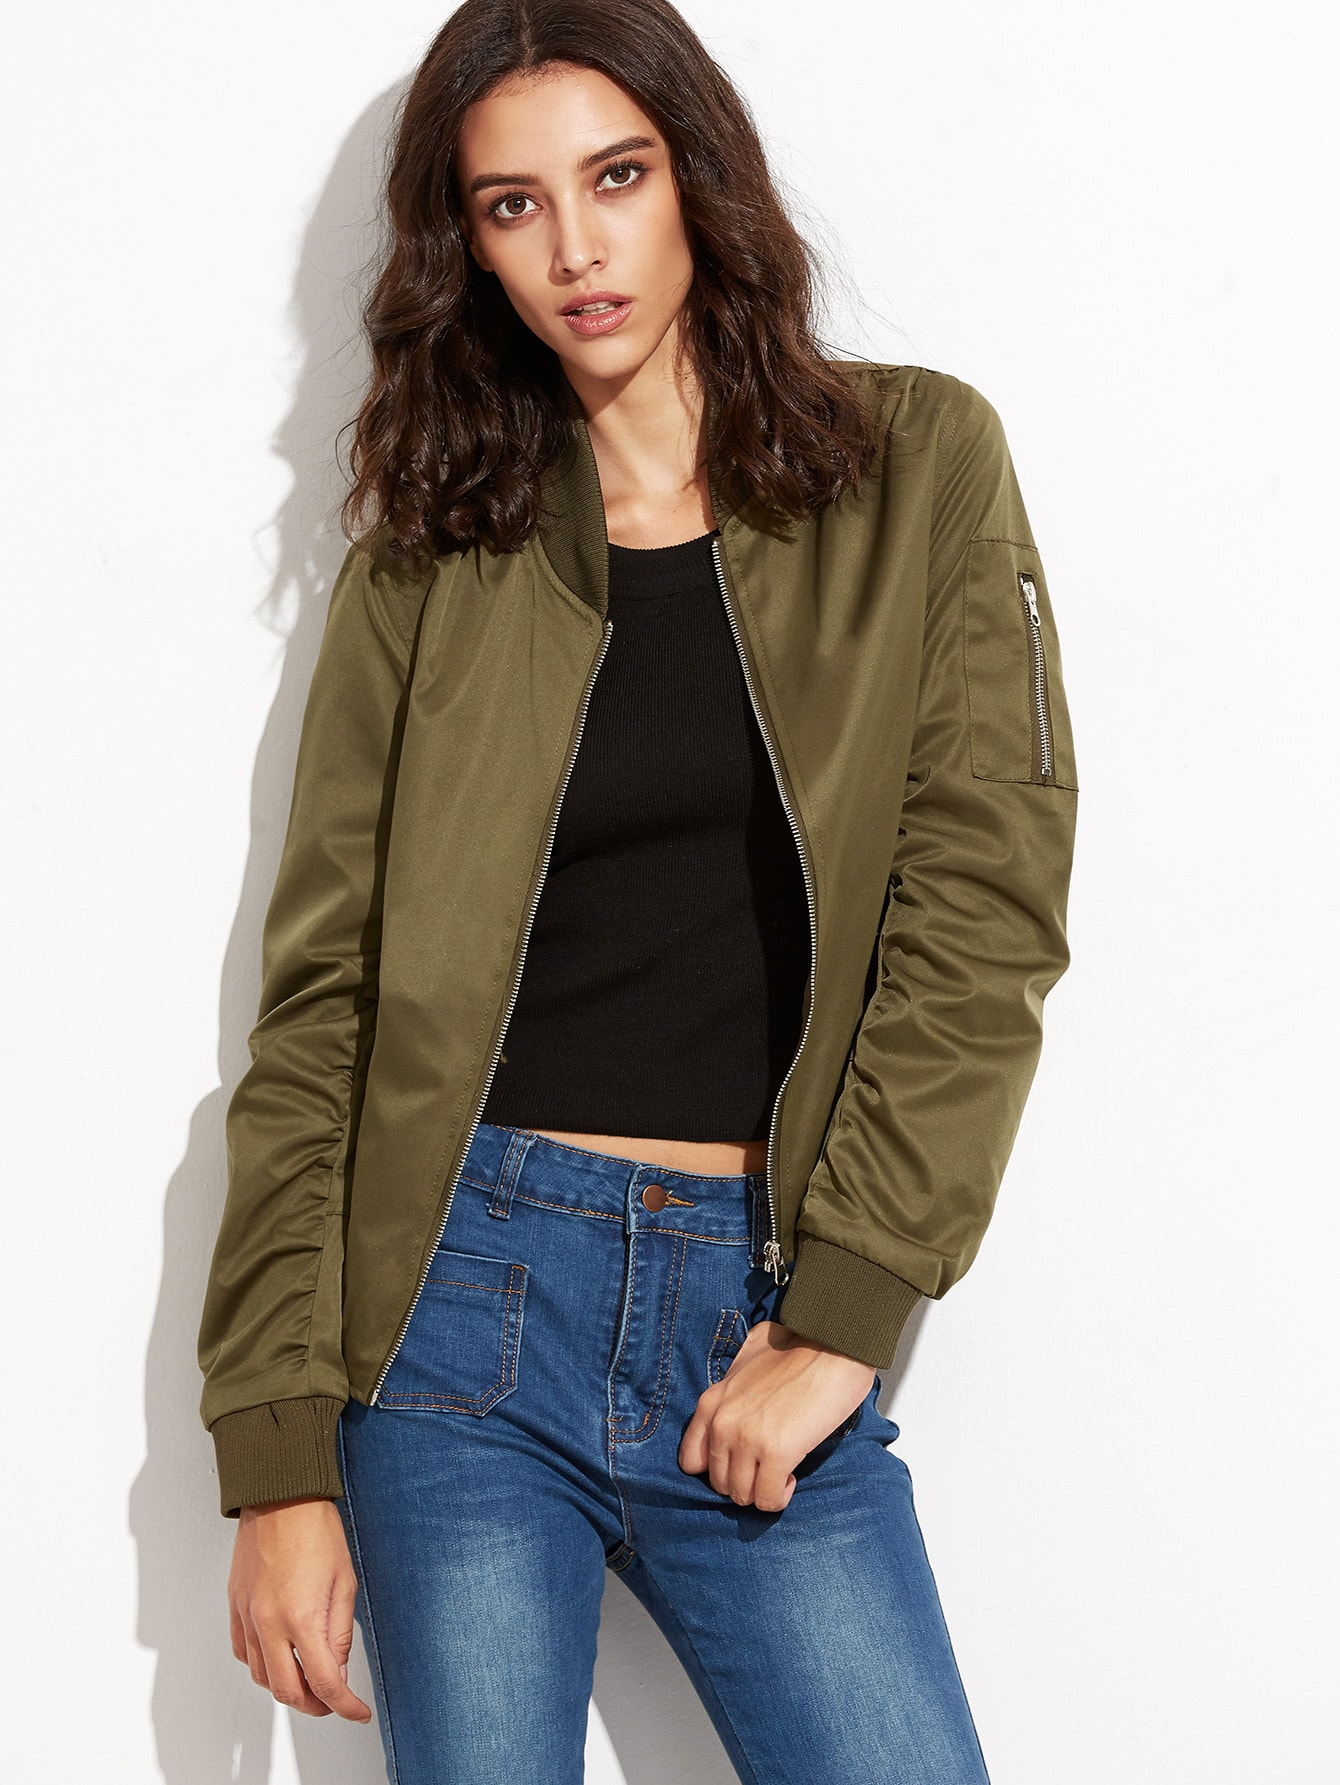 Army Green Zipper Up Flight Jacket With Pockets cougar 530m army green